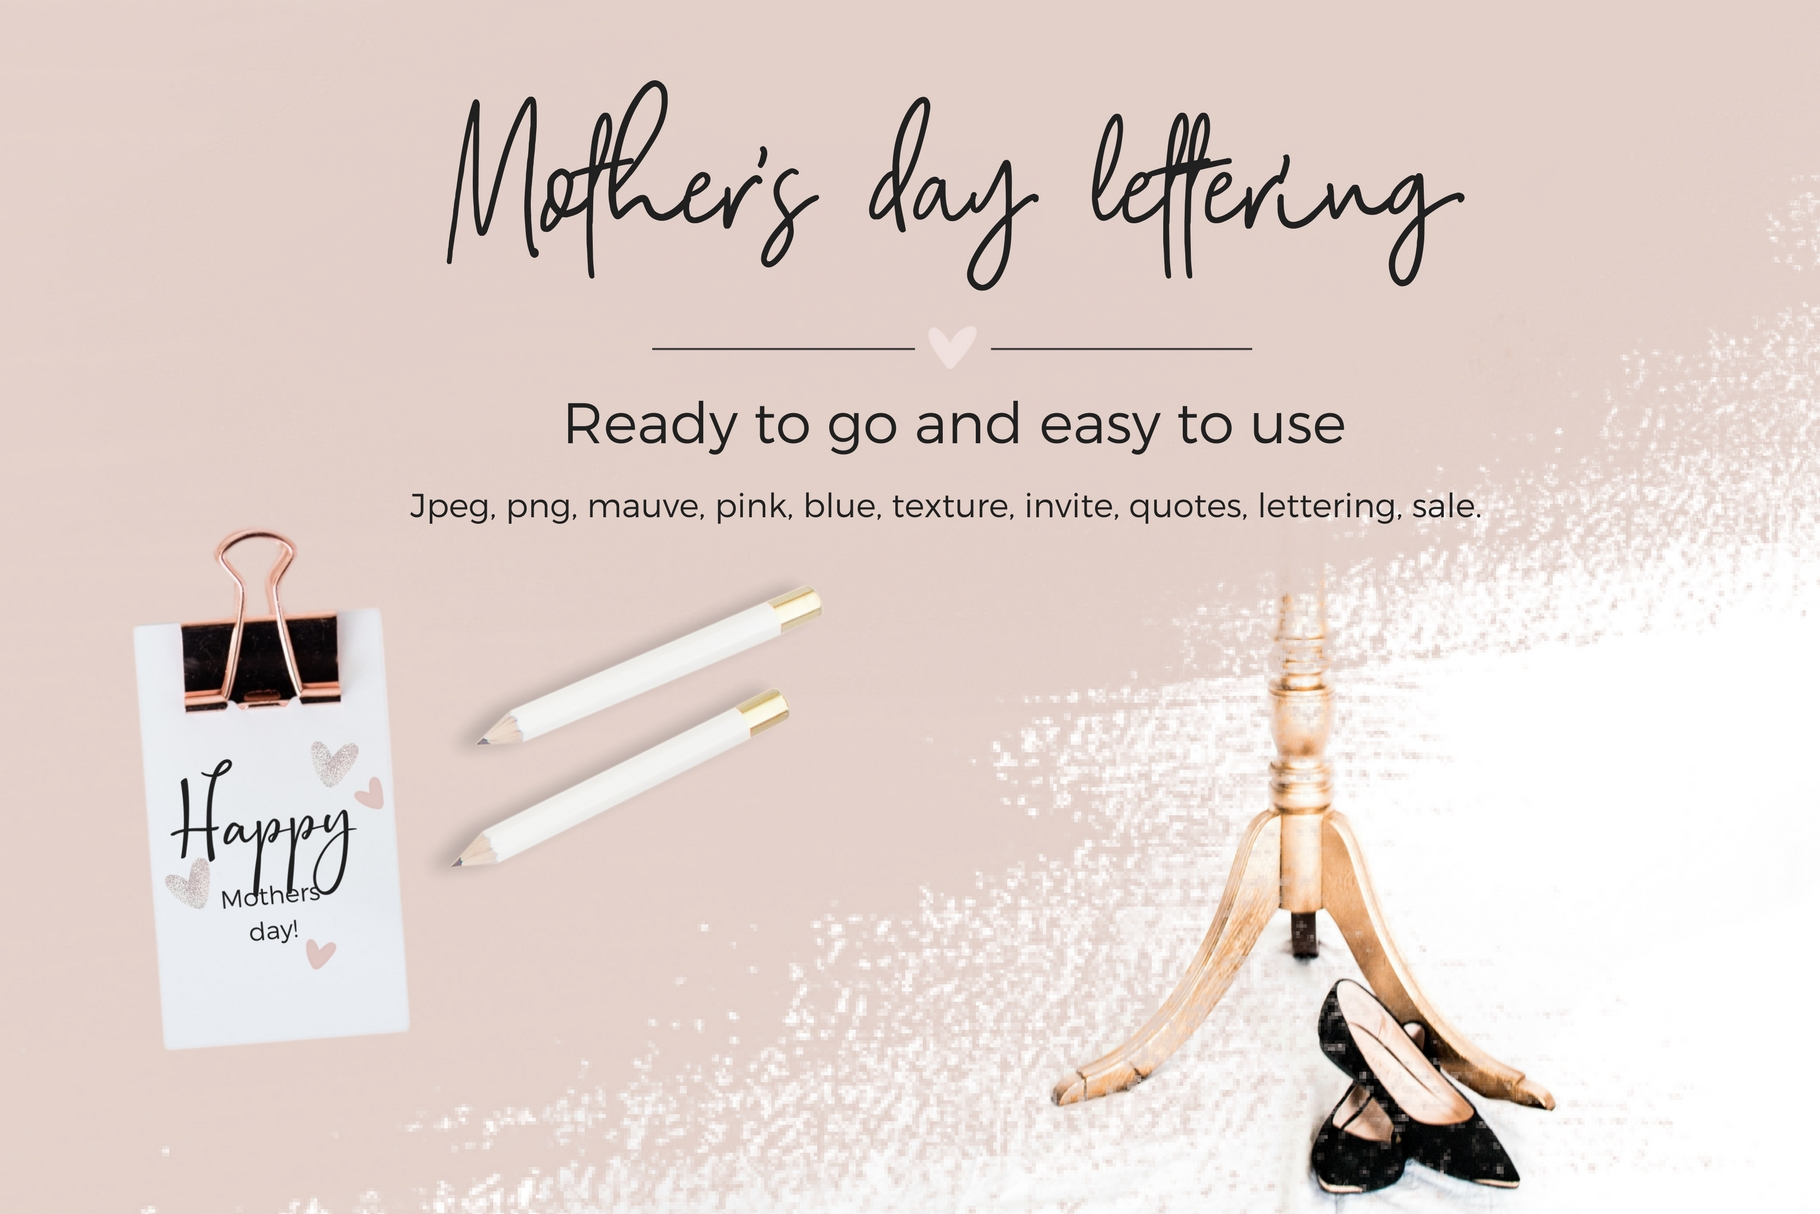 Mother's Day Lettering Graphic Web Elements By Creative Stash - Image 10